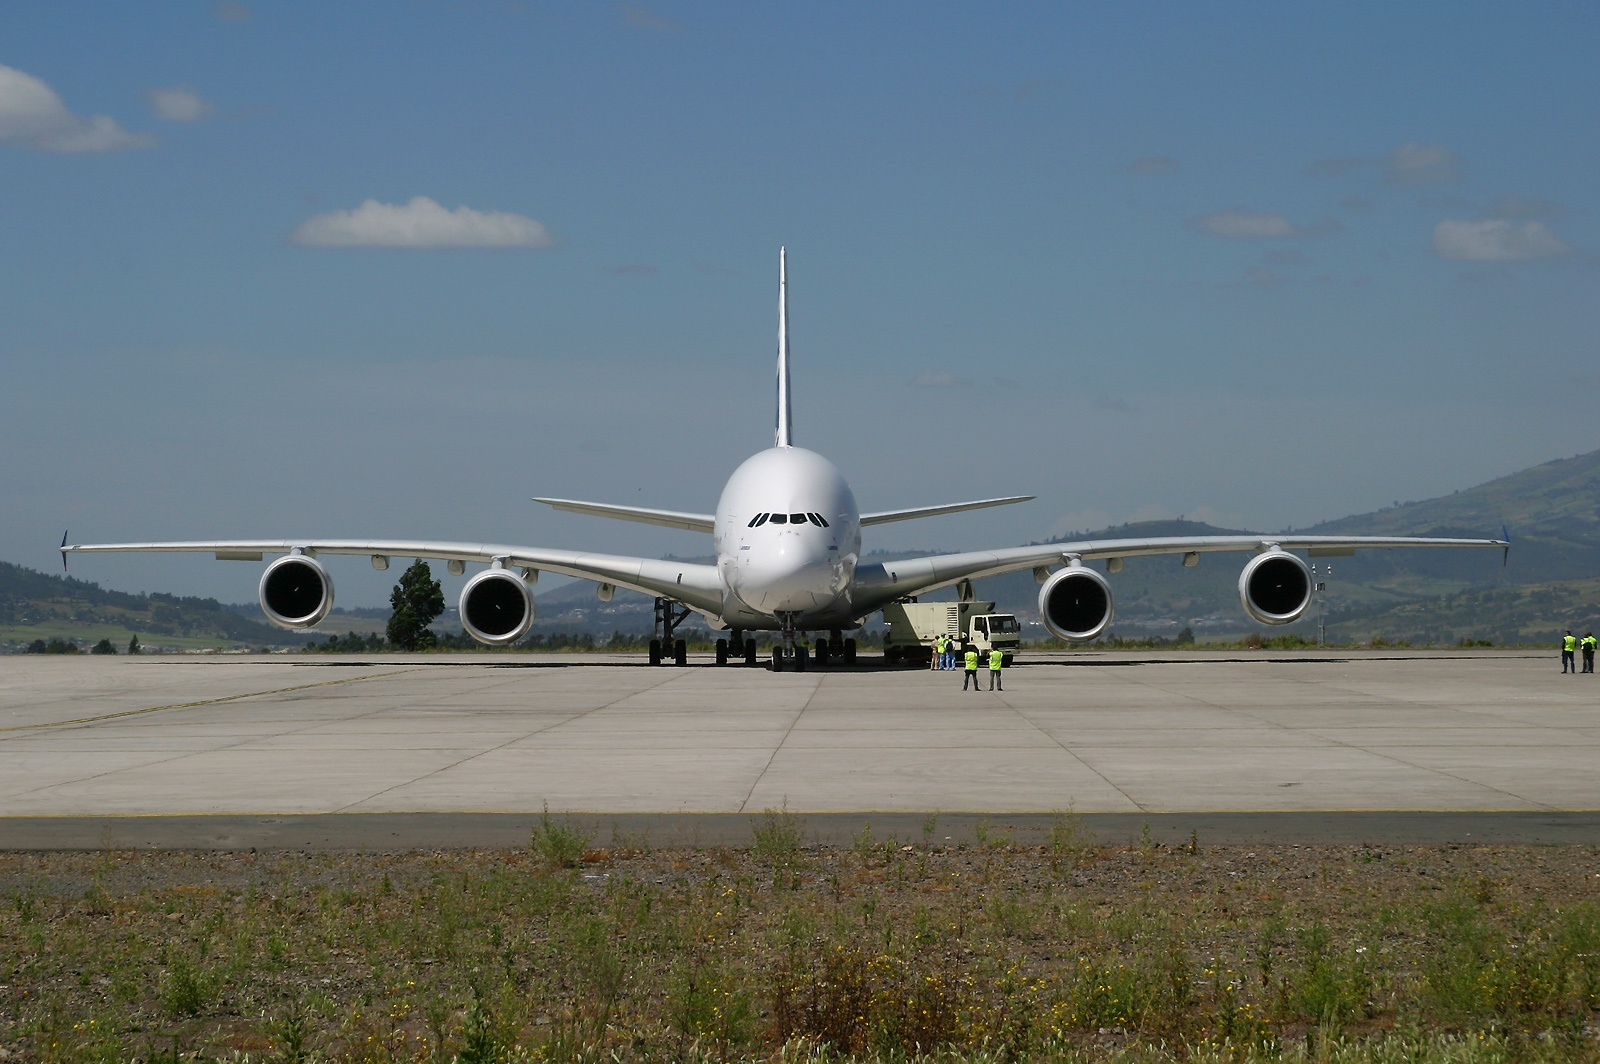 A380 gives you wings...